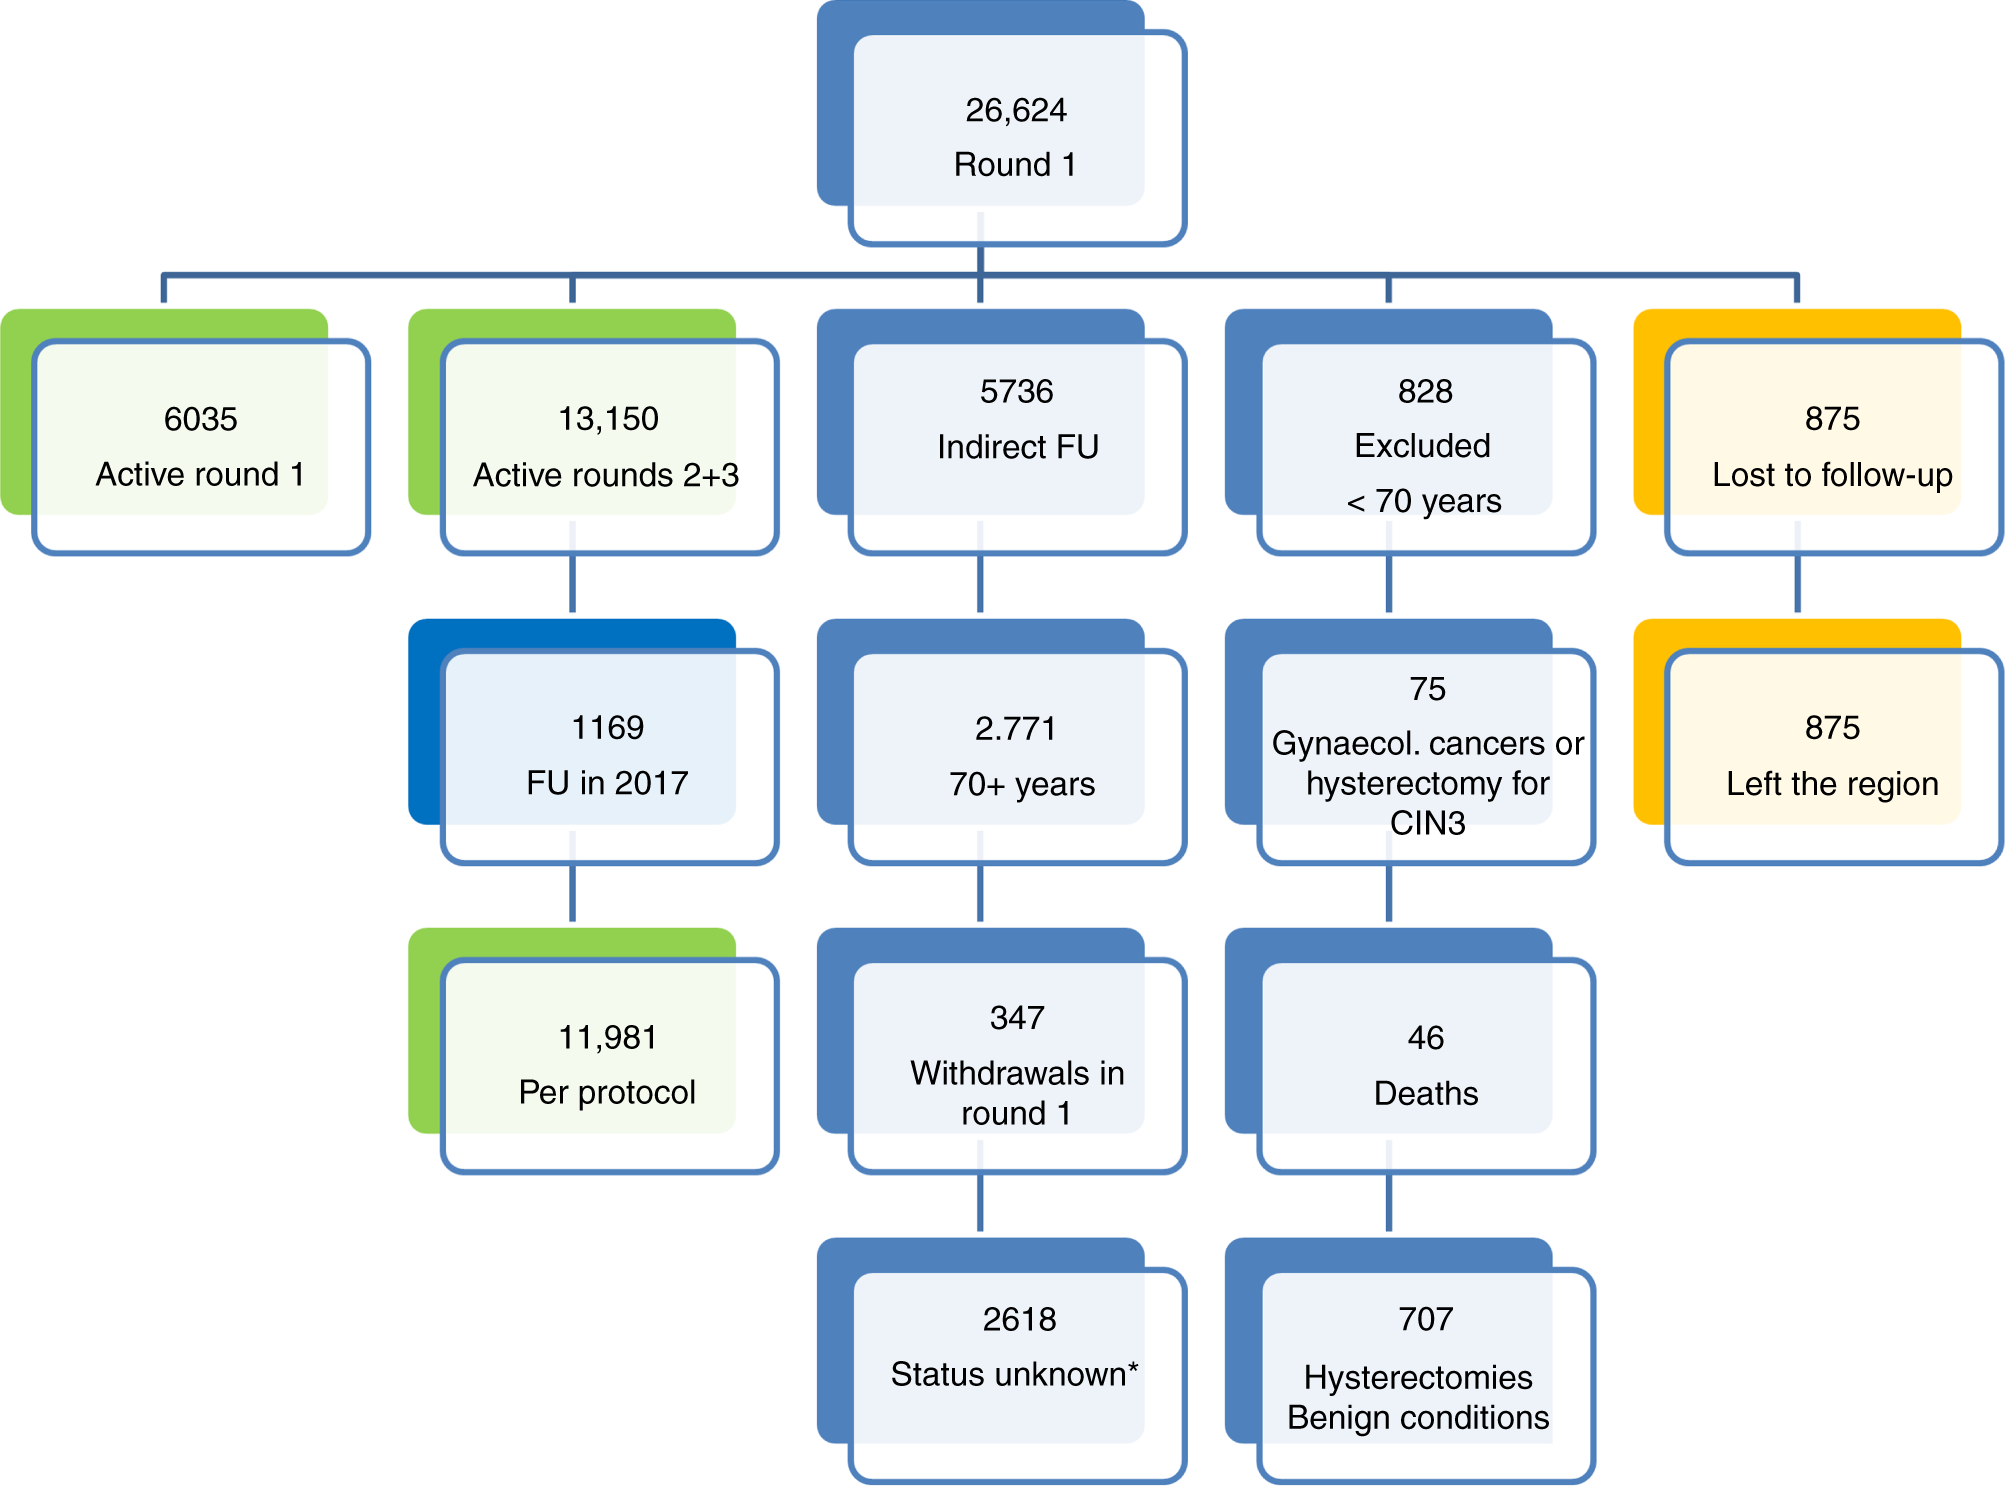 Reduction of cervical cancer incidence within a primary HPV